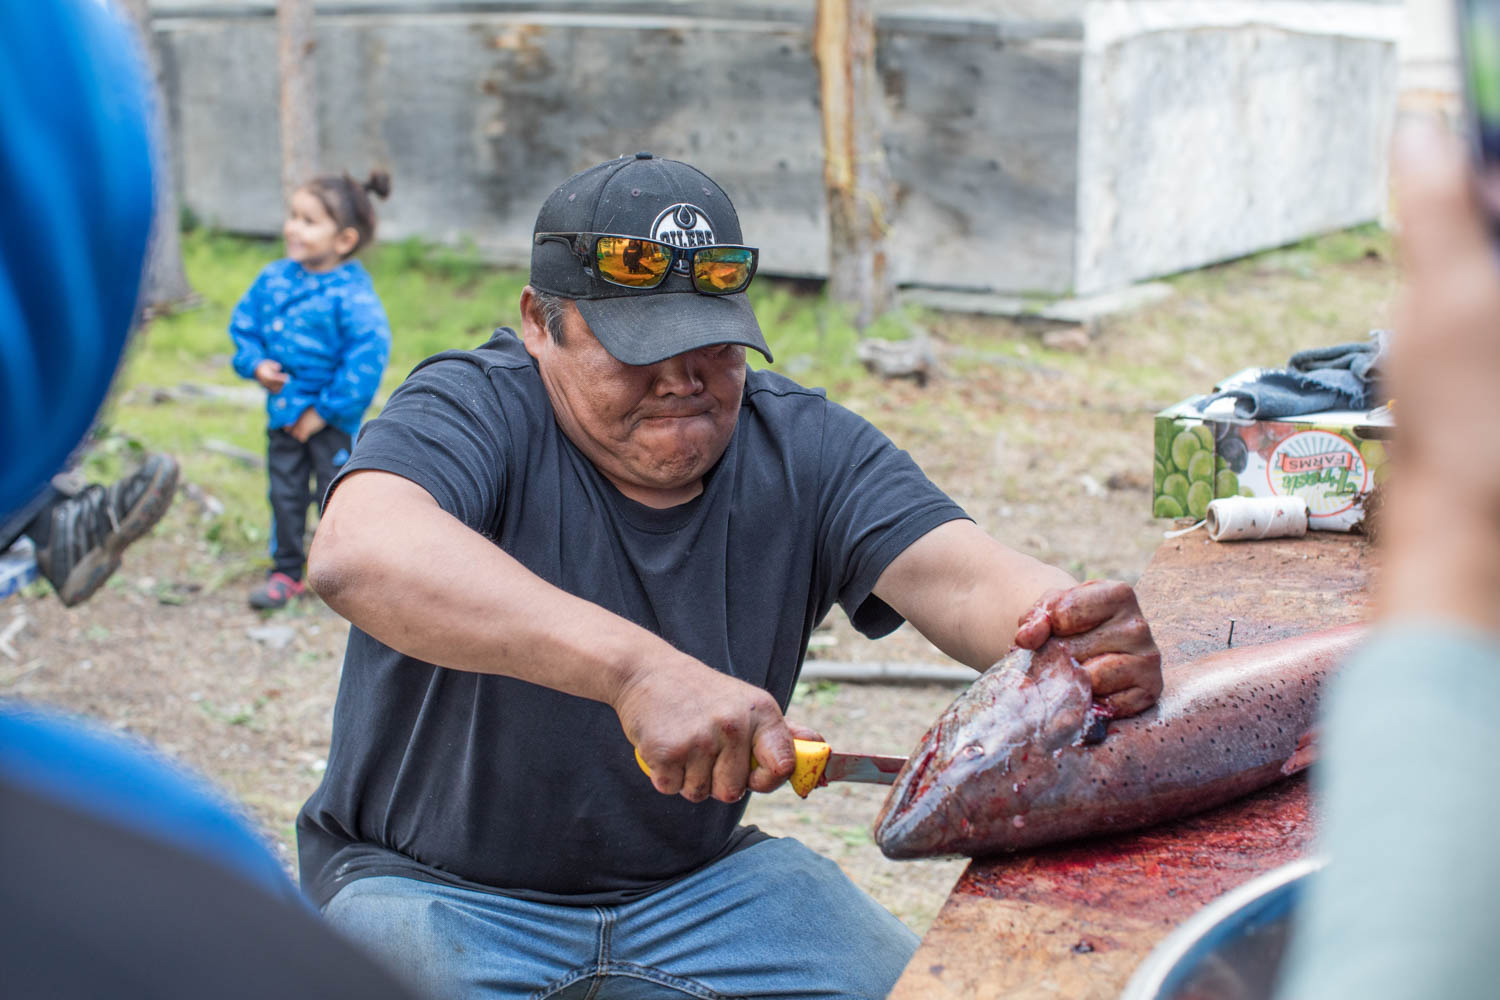 Robert Kyikavichik shows Old Crow youth how to fillet a freshly caught Chinook salmon. (Photo: Kanina Holmes)